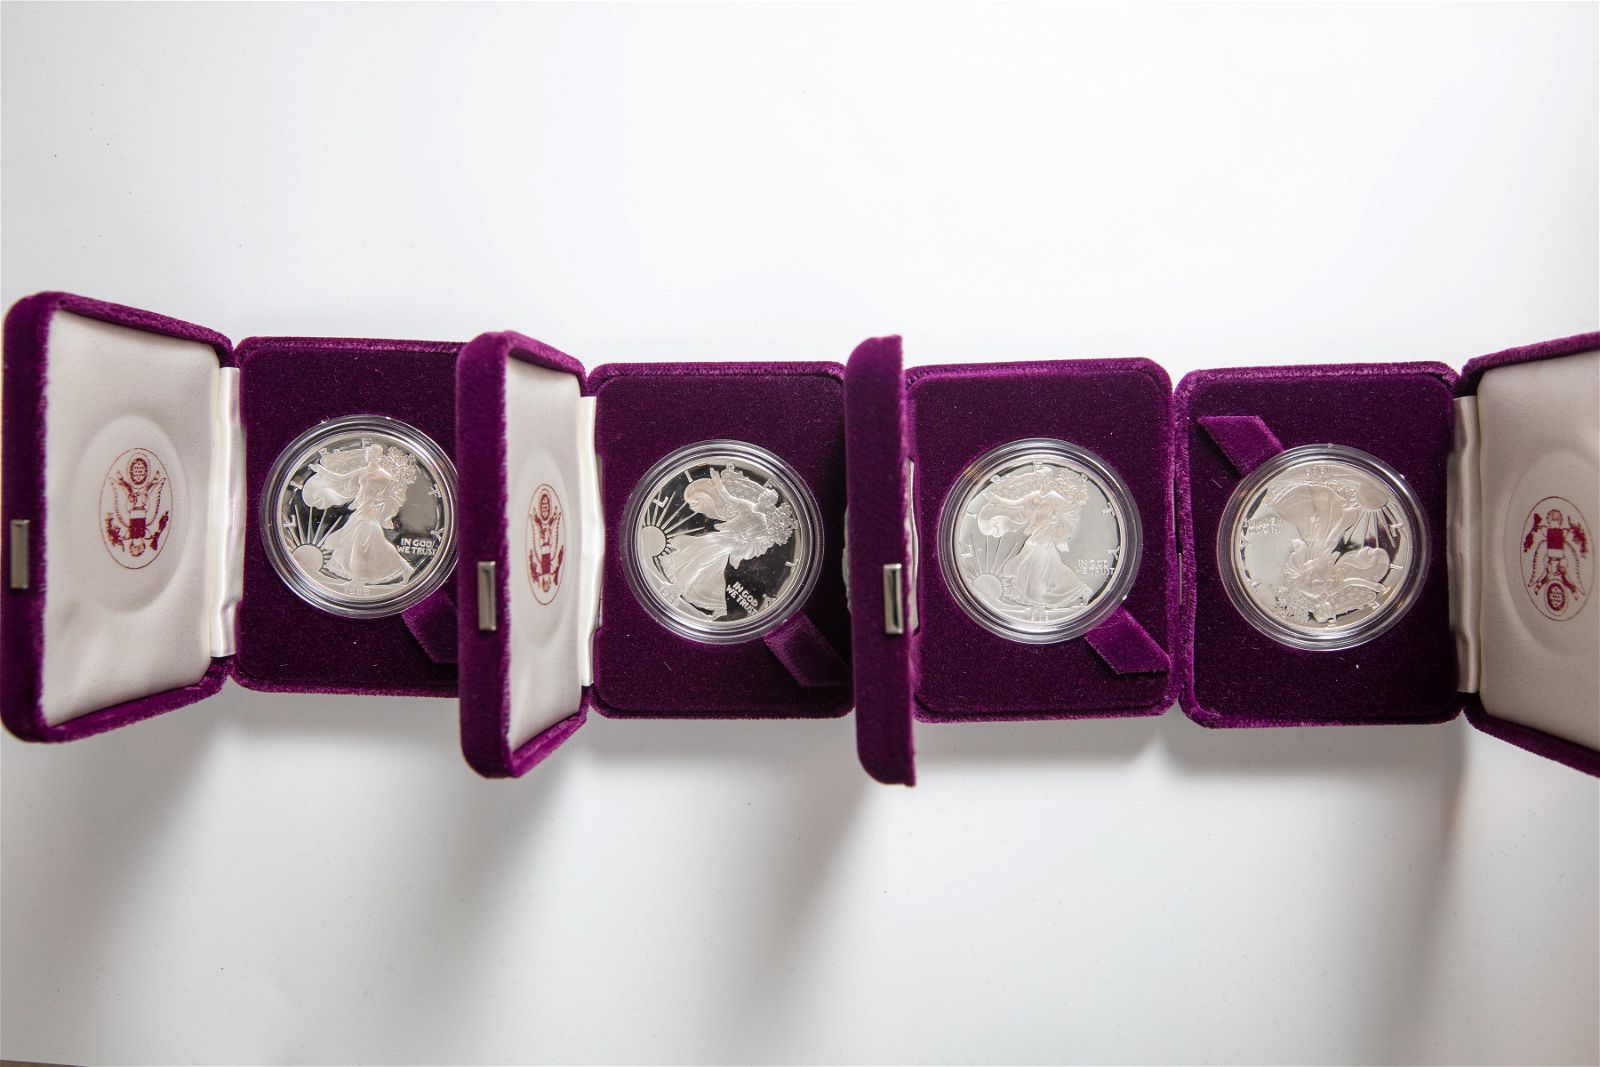 Lot of 4 Silver American Eagle One Ounce Proof Silver